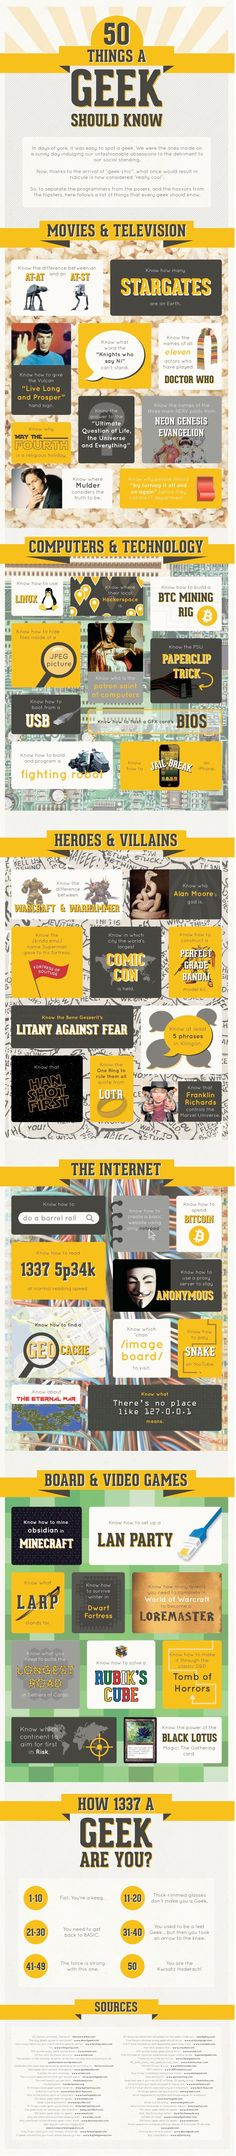 50 things a Geek should know #infographic